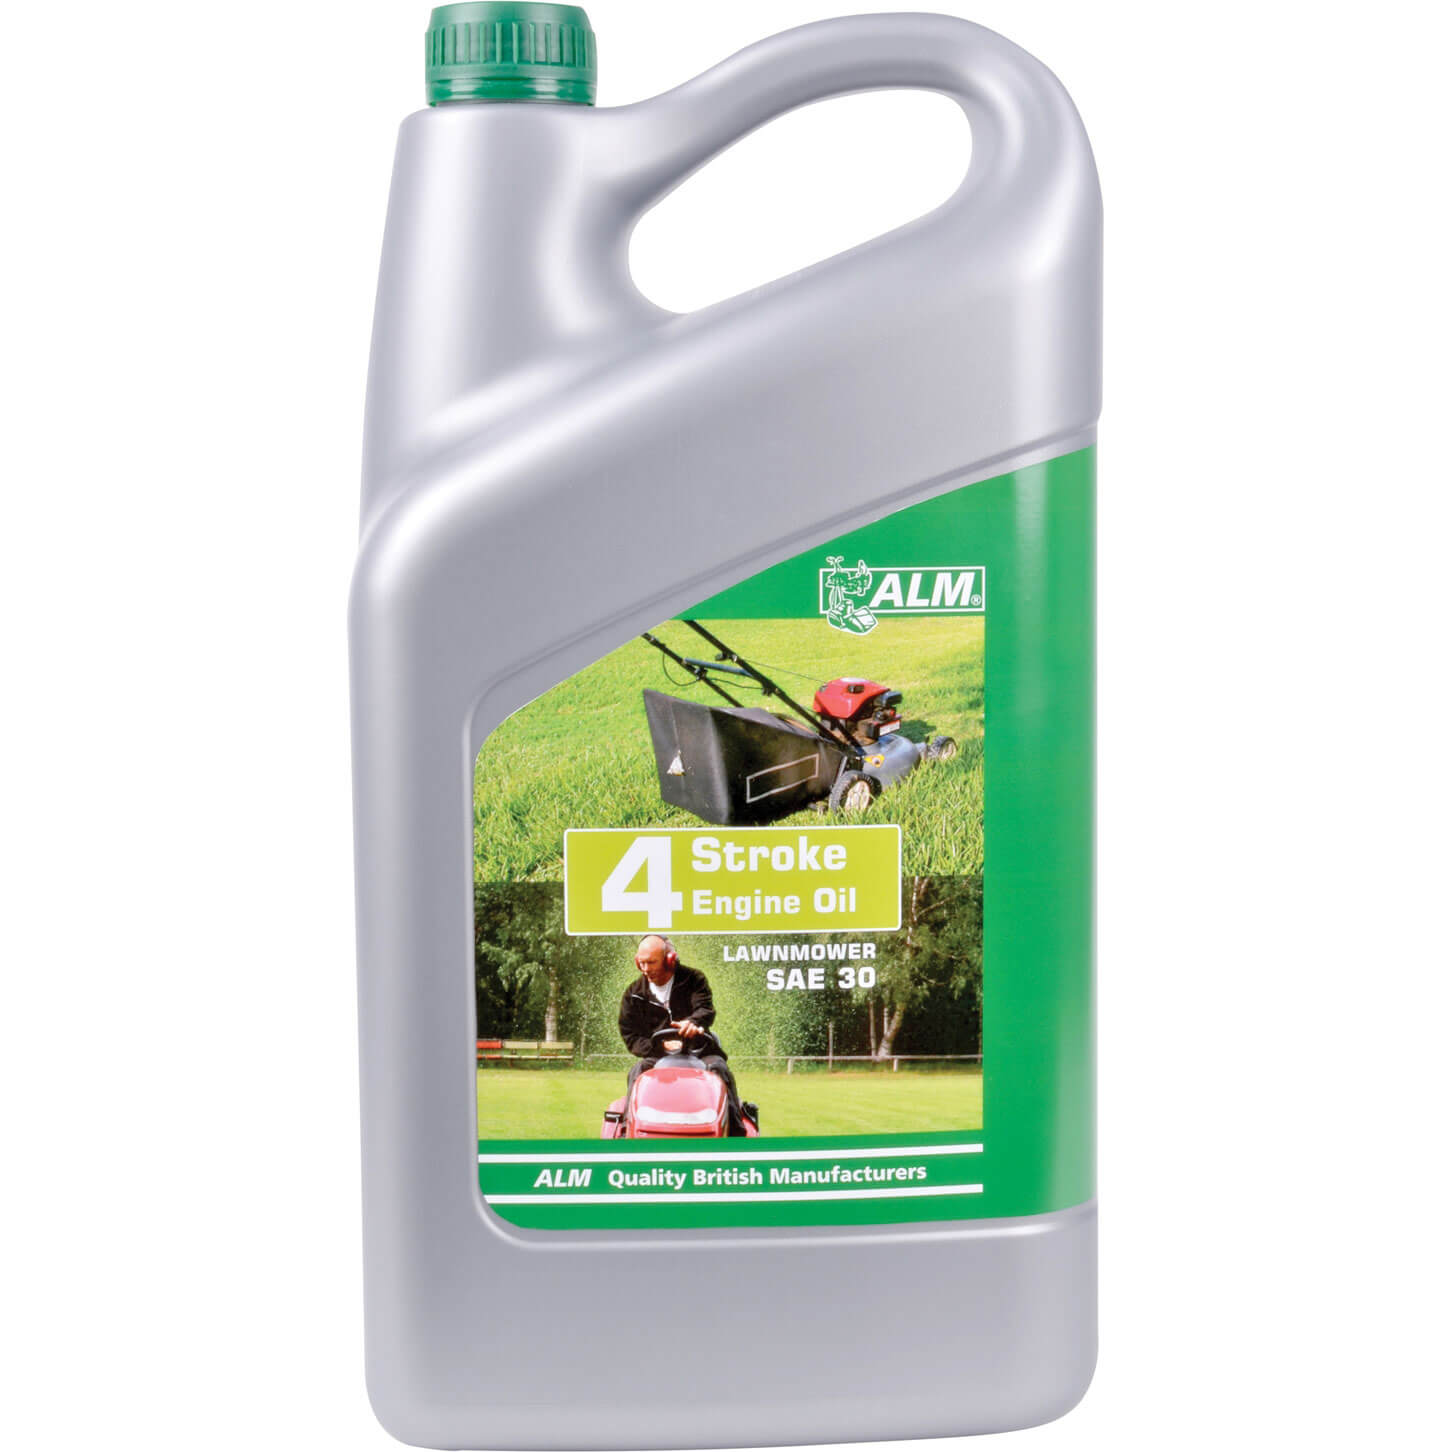 ALM 4 Stroke Lawnmower Oil for Petrol & Diesel Engines 5L